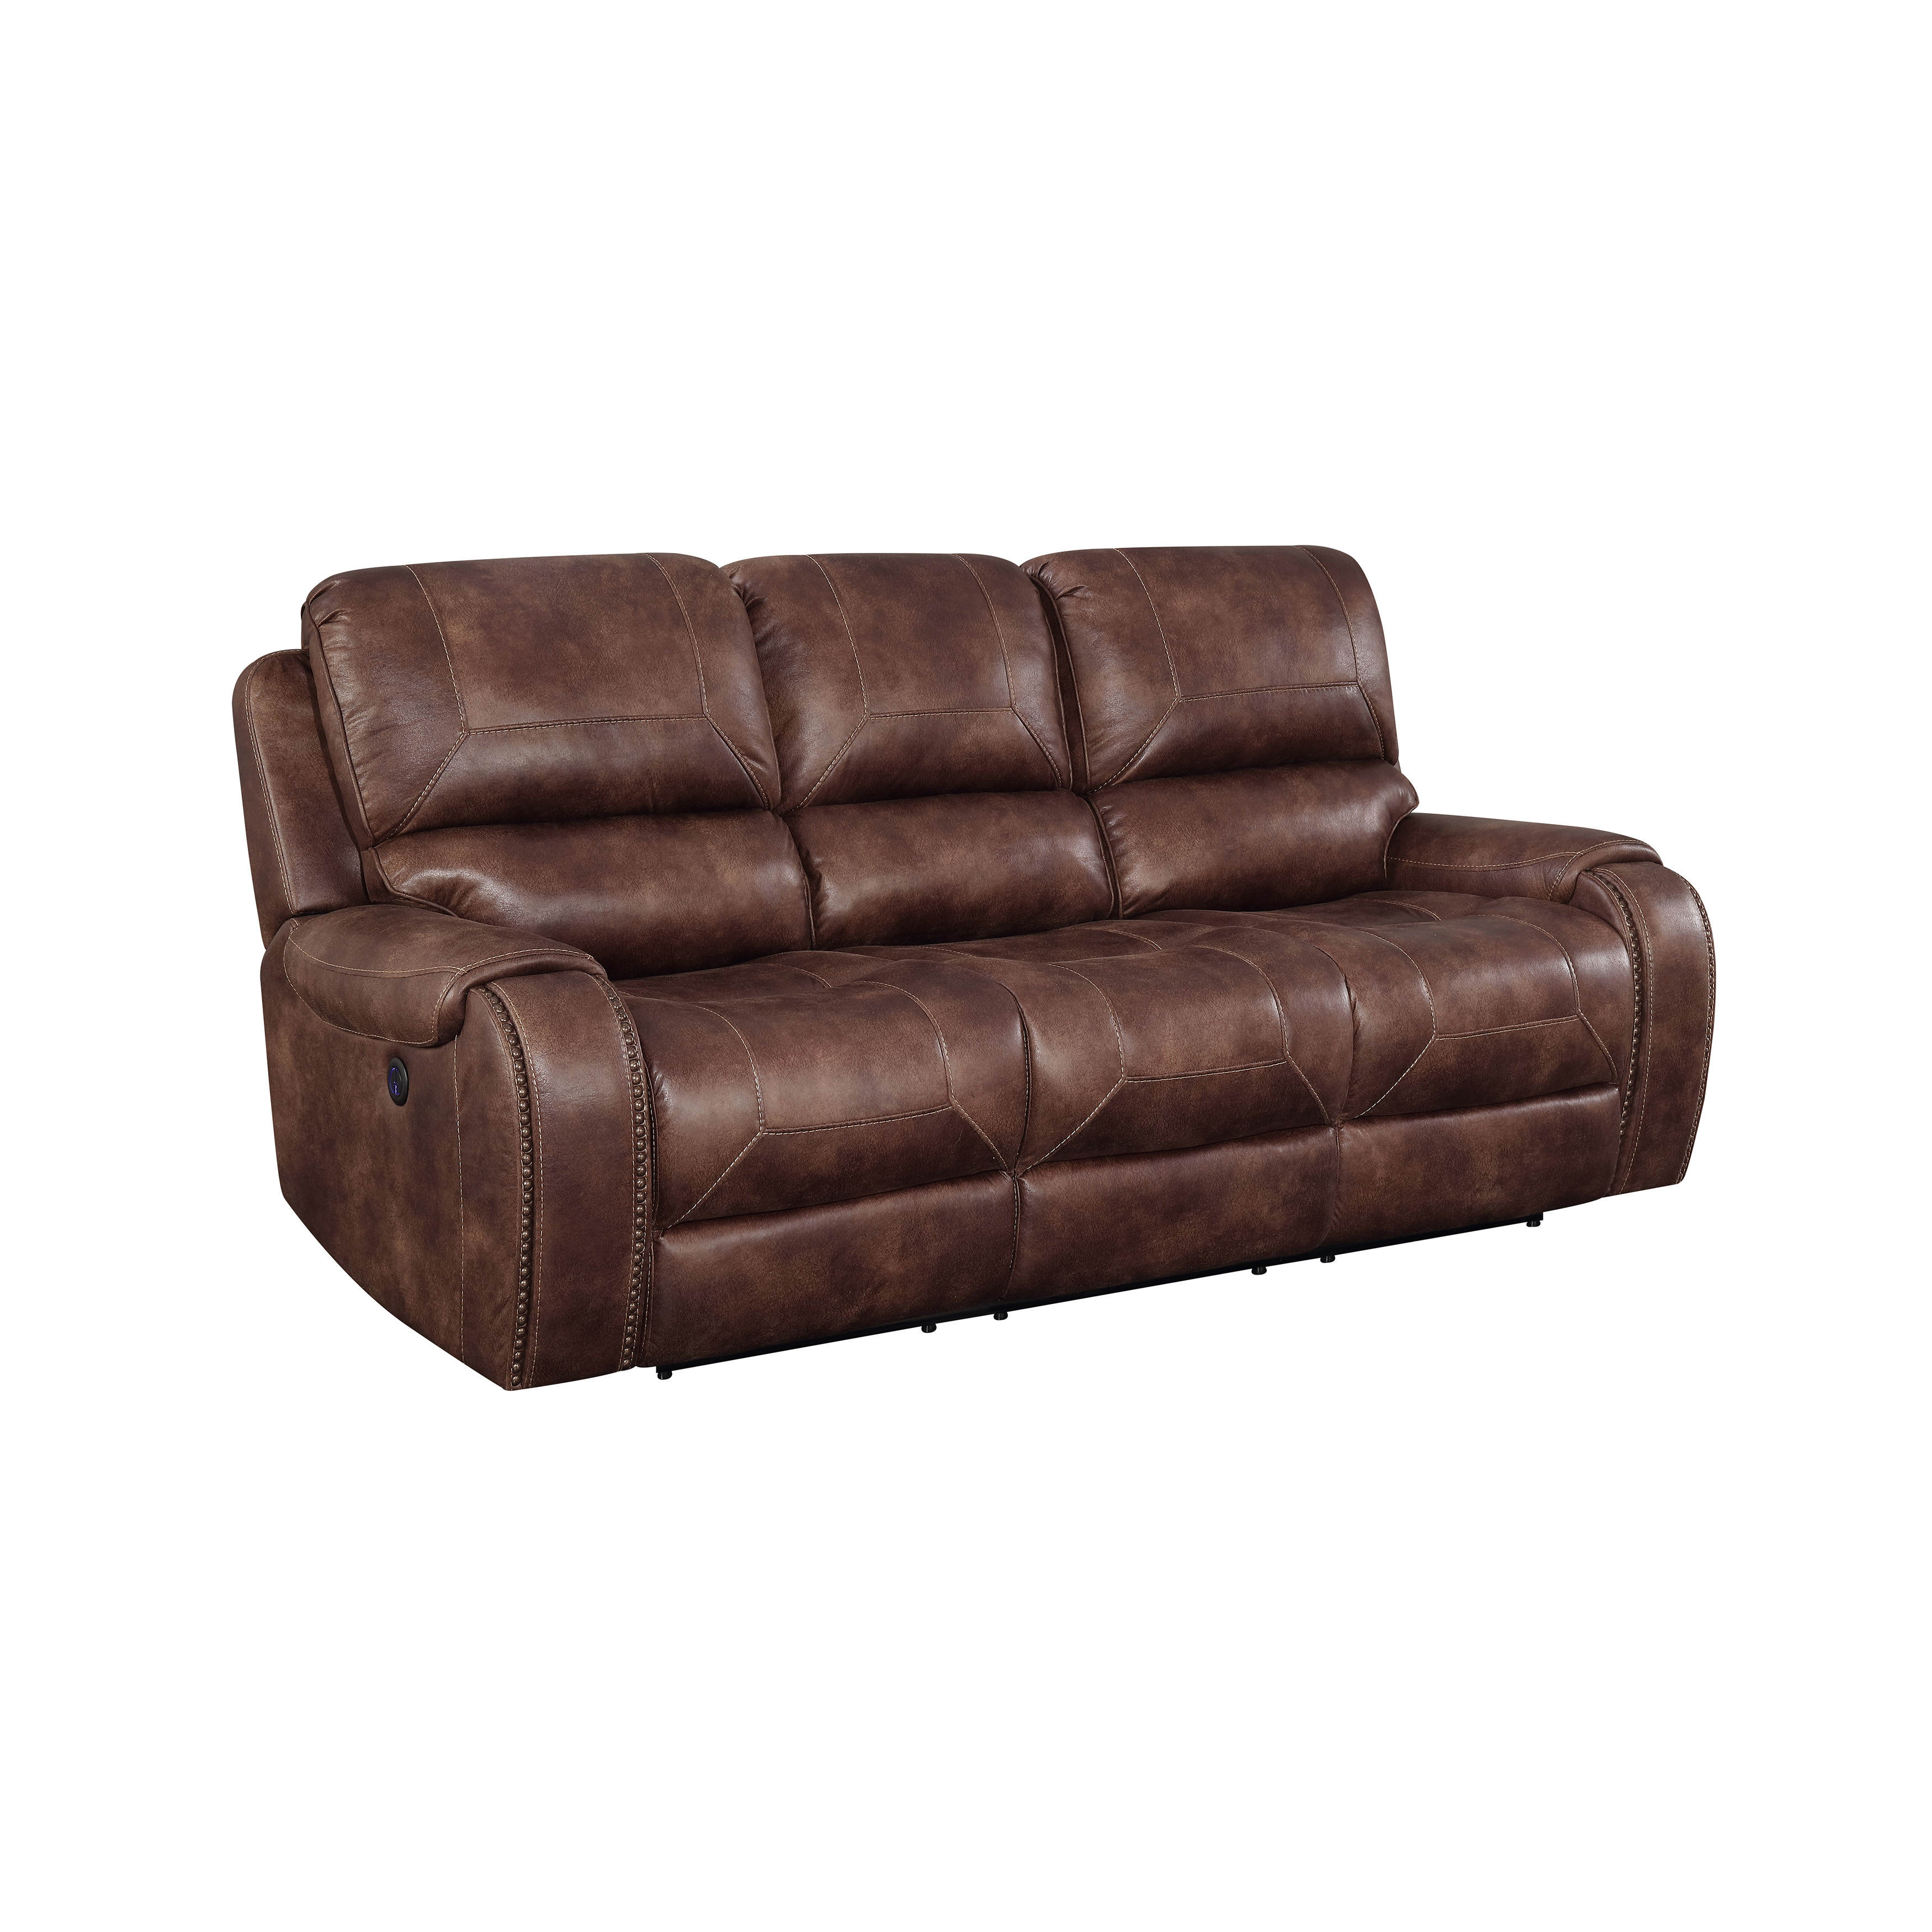 Astonishing Home Meridian Jennings Mocha Power Reclining Sofa The Gmtry Best Dining Table And Chair Ideas Images Gmtryco